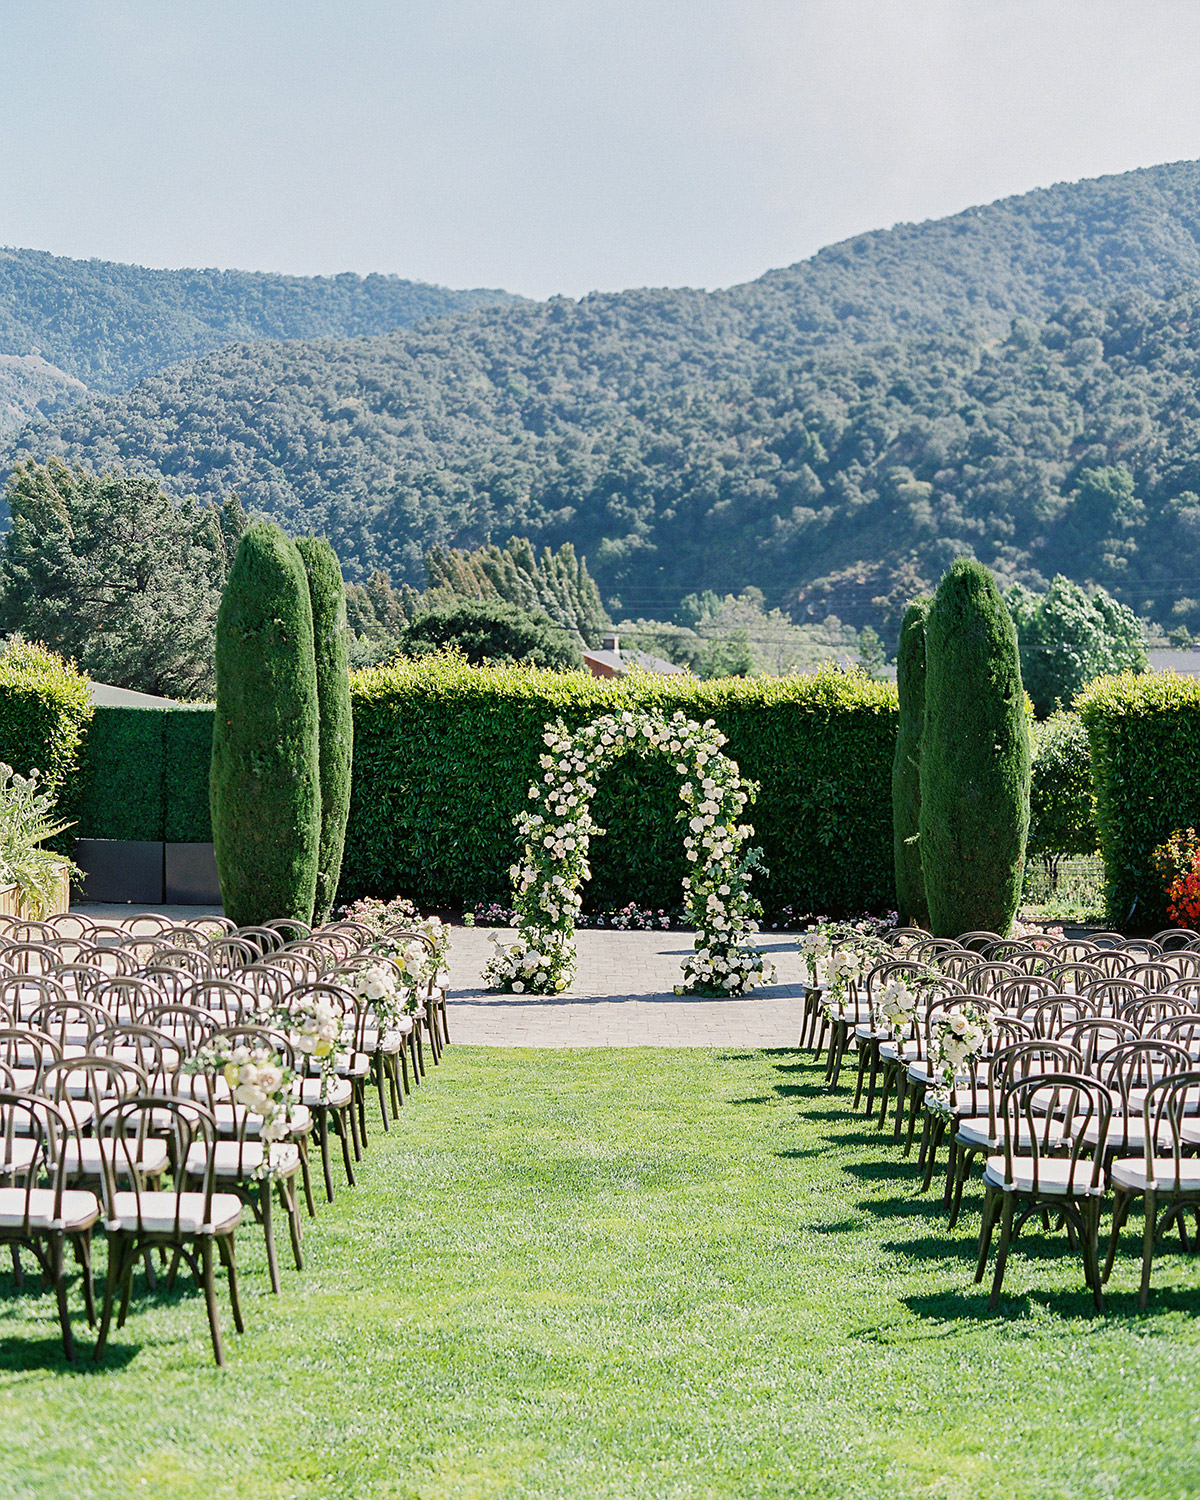 outdoor wedding ceremony seating and floral arch by green shrubs